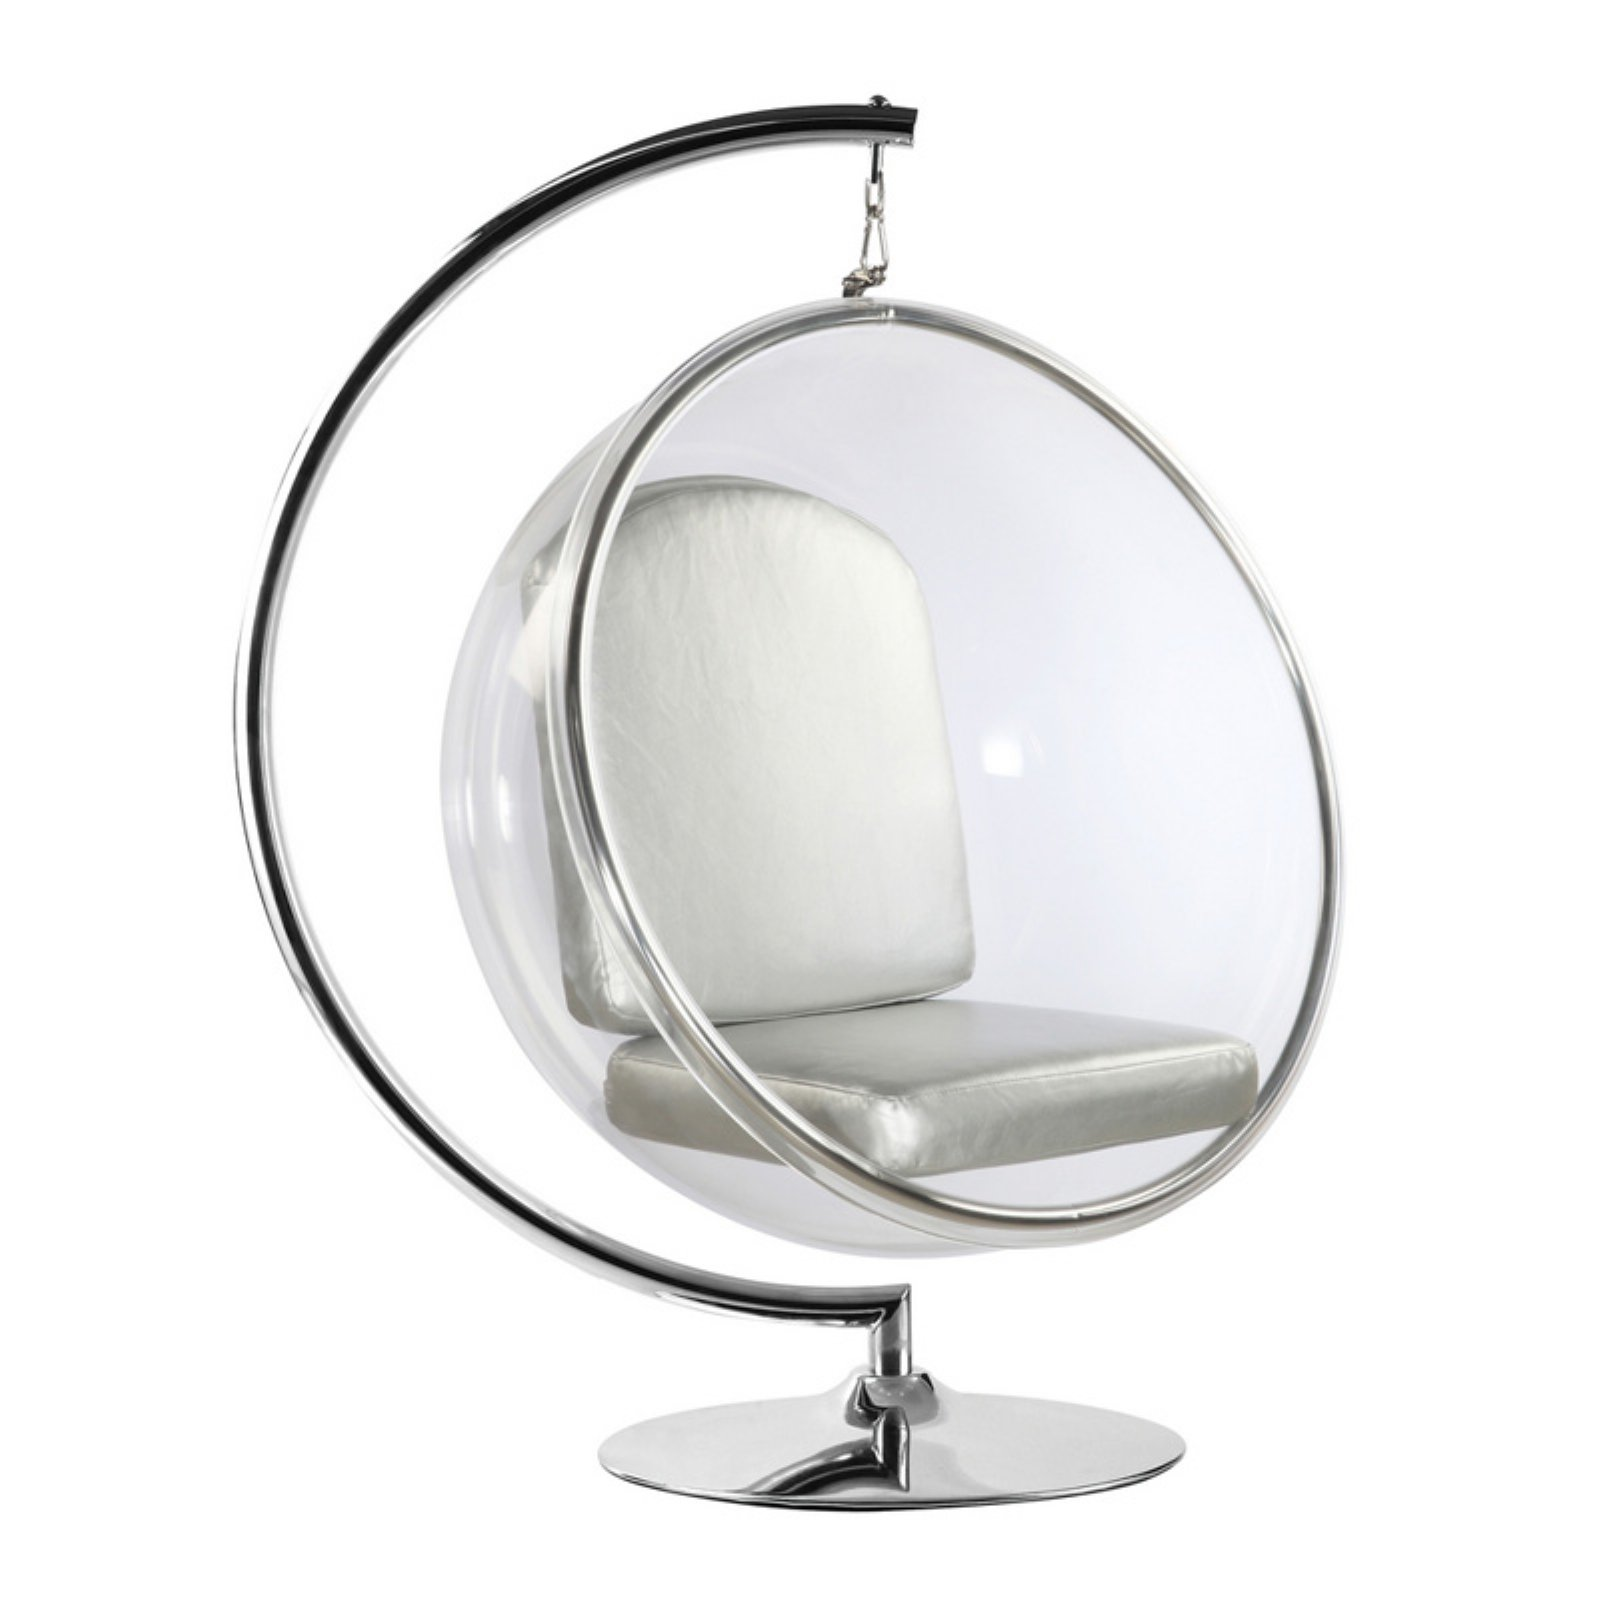 Aron Living Bubble Chair with Optional Stand